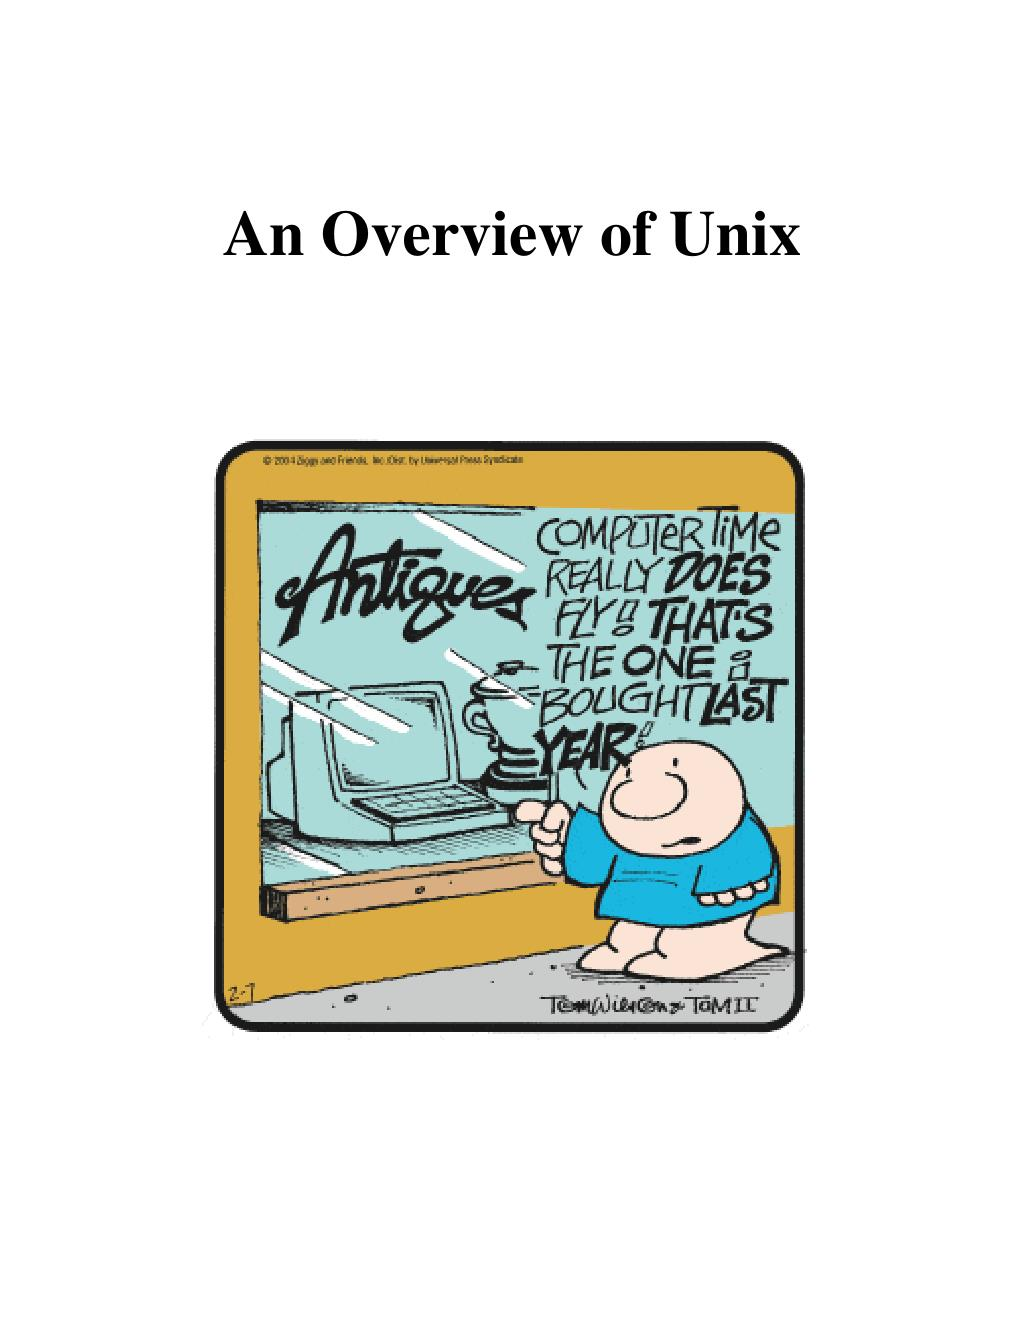 an overview of unix l.